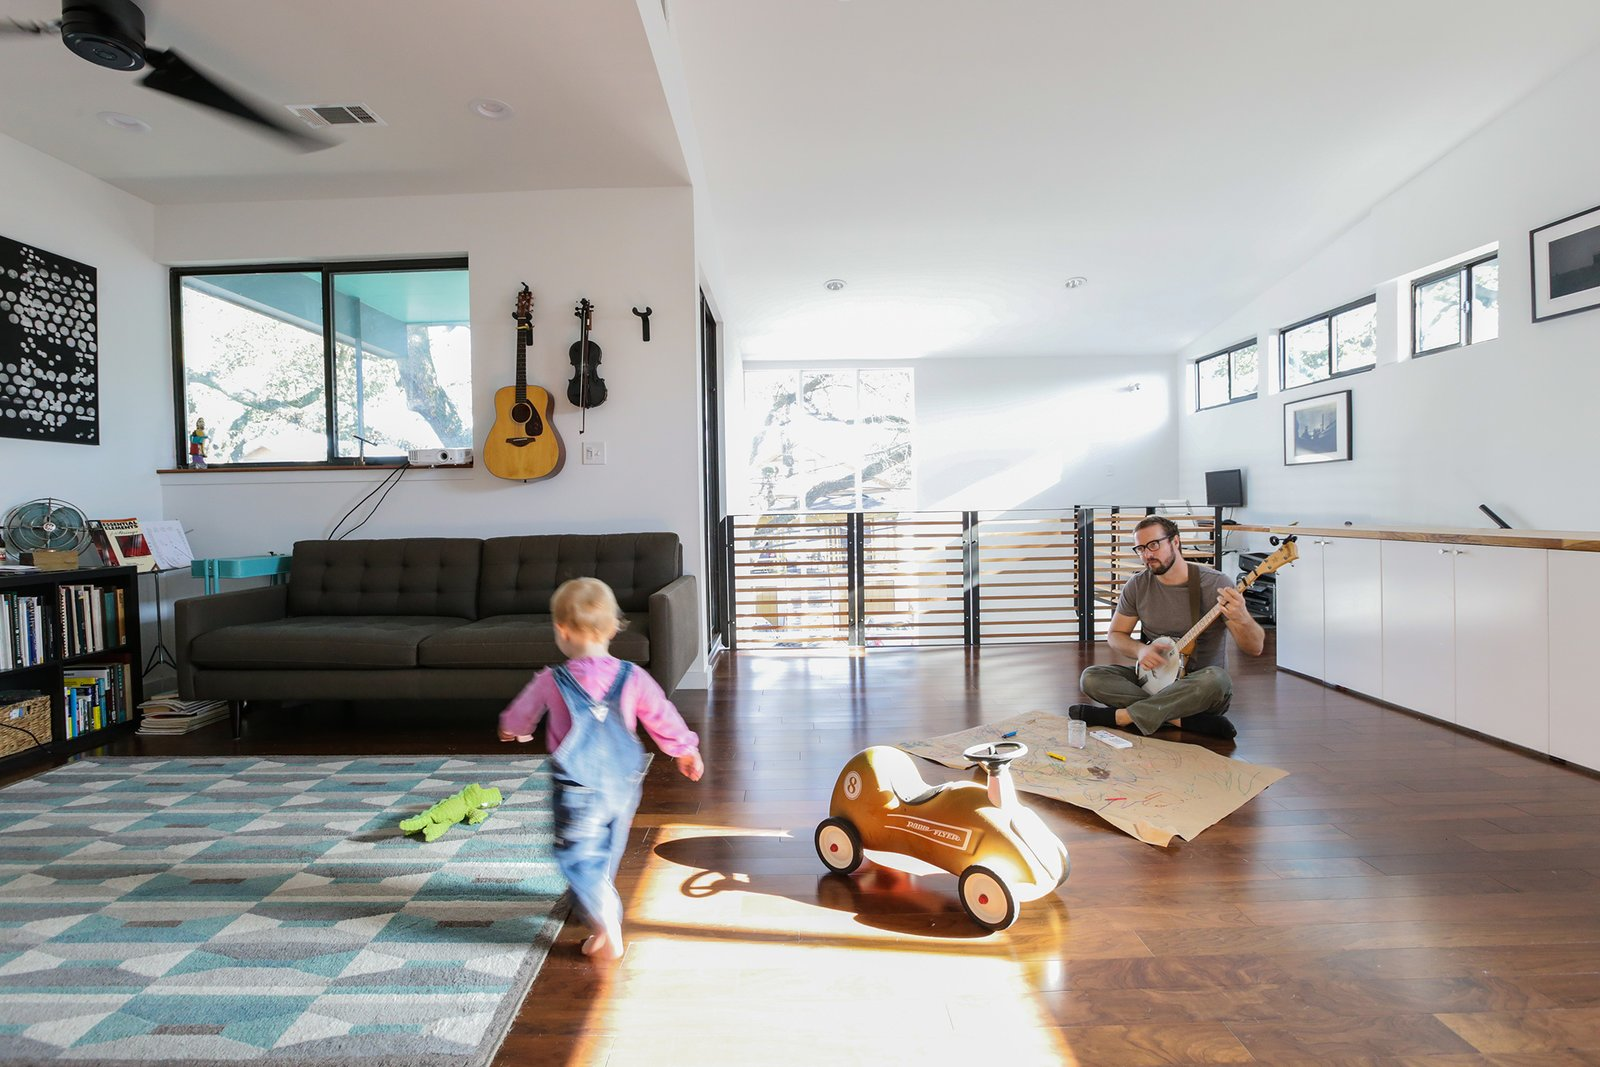 Second floor living spaces Tagged: Living Room, Ceiling Lighting, Sofa, and Dark Hardwood Floor. Dorgenois by Emilie Taylor Welty